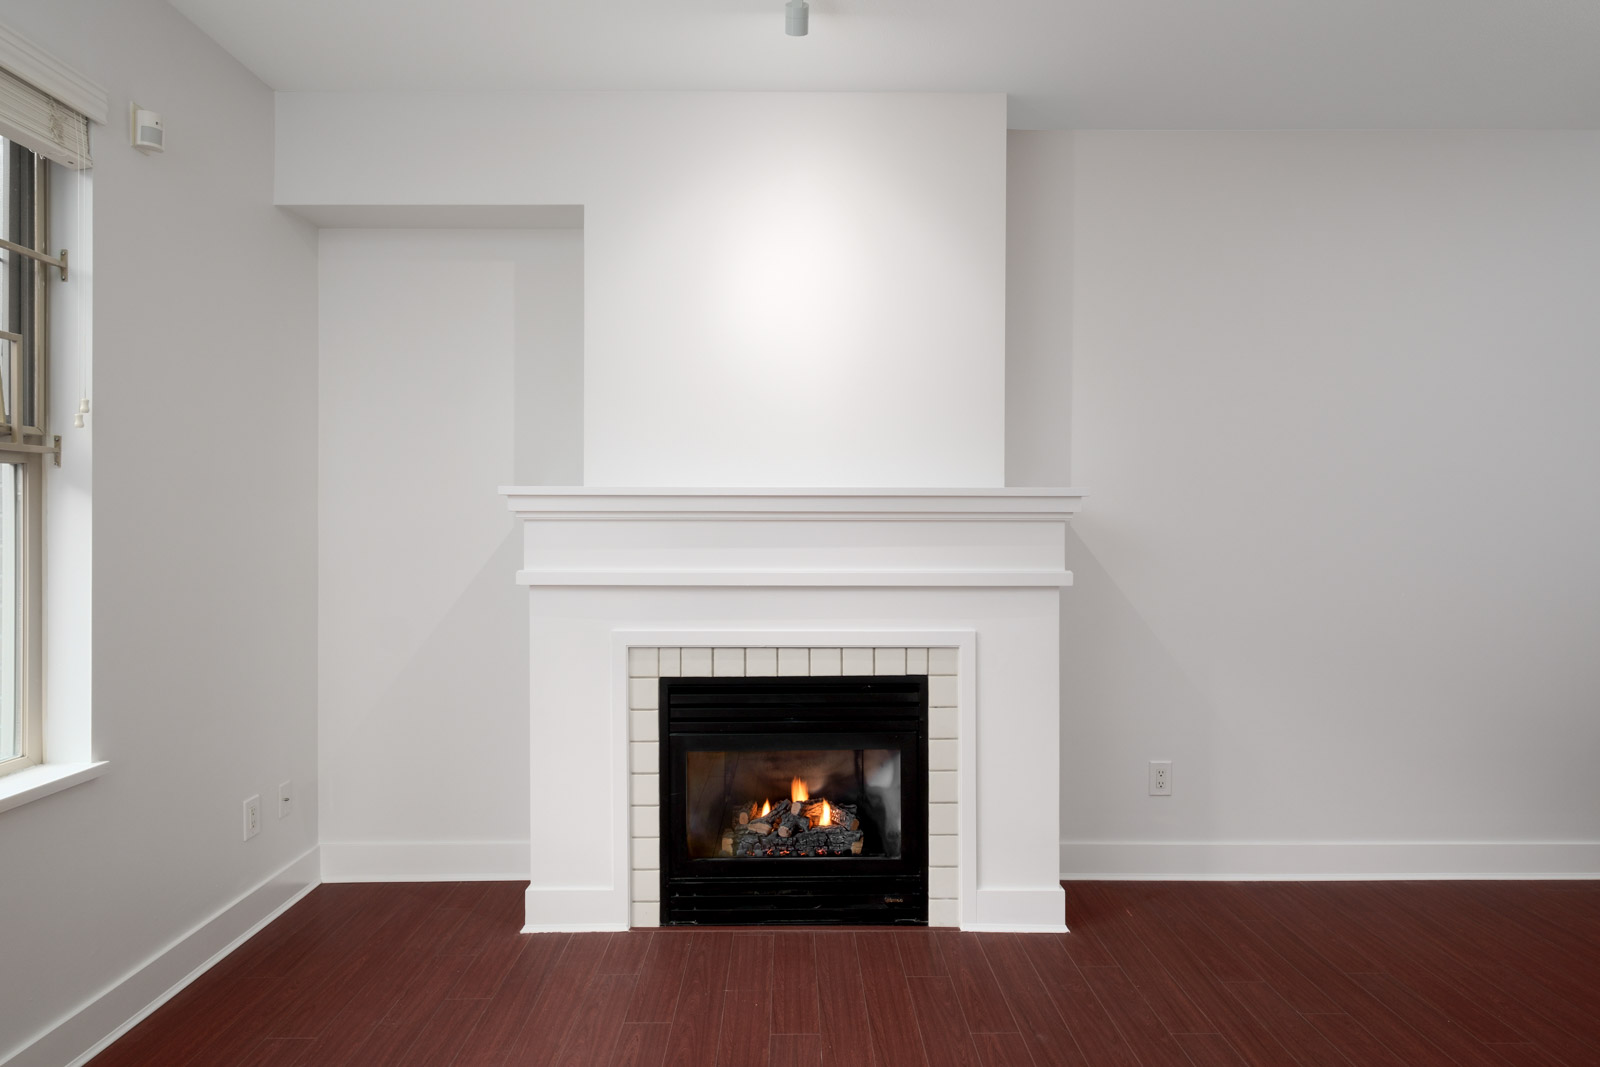 gas fireplace with white walls in rental apartment at alexandra house near arbutus and king edward in vancouver westside